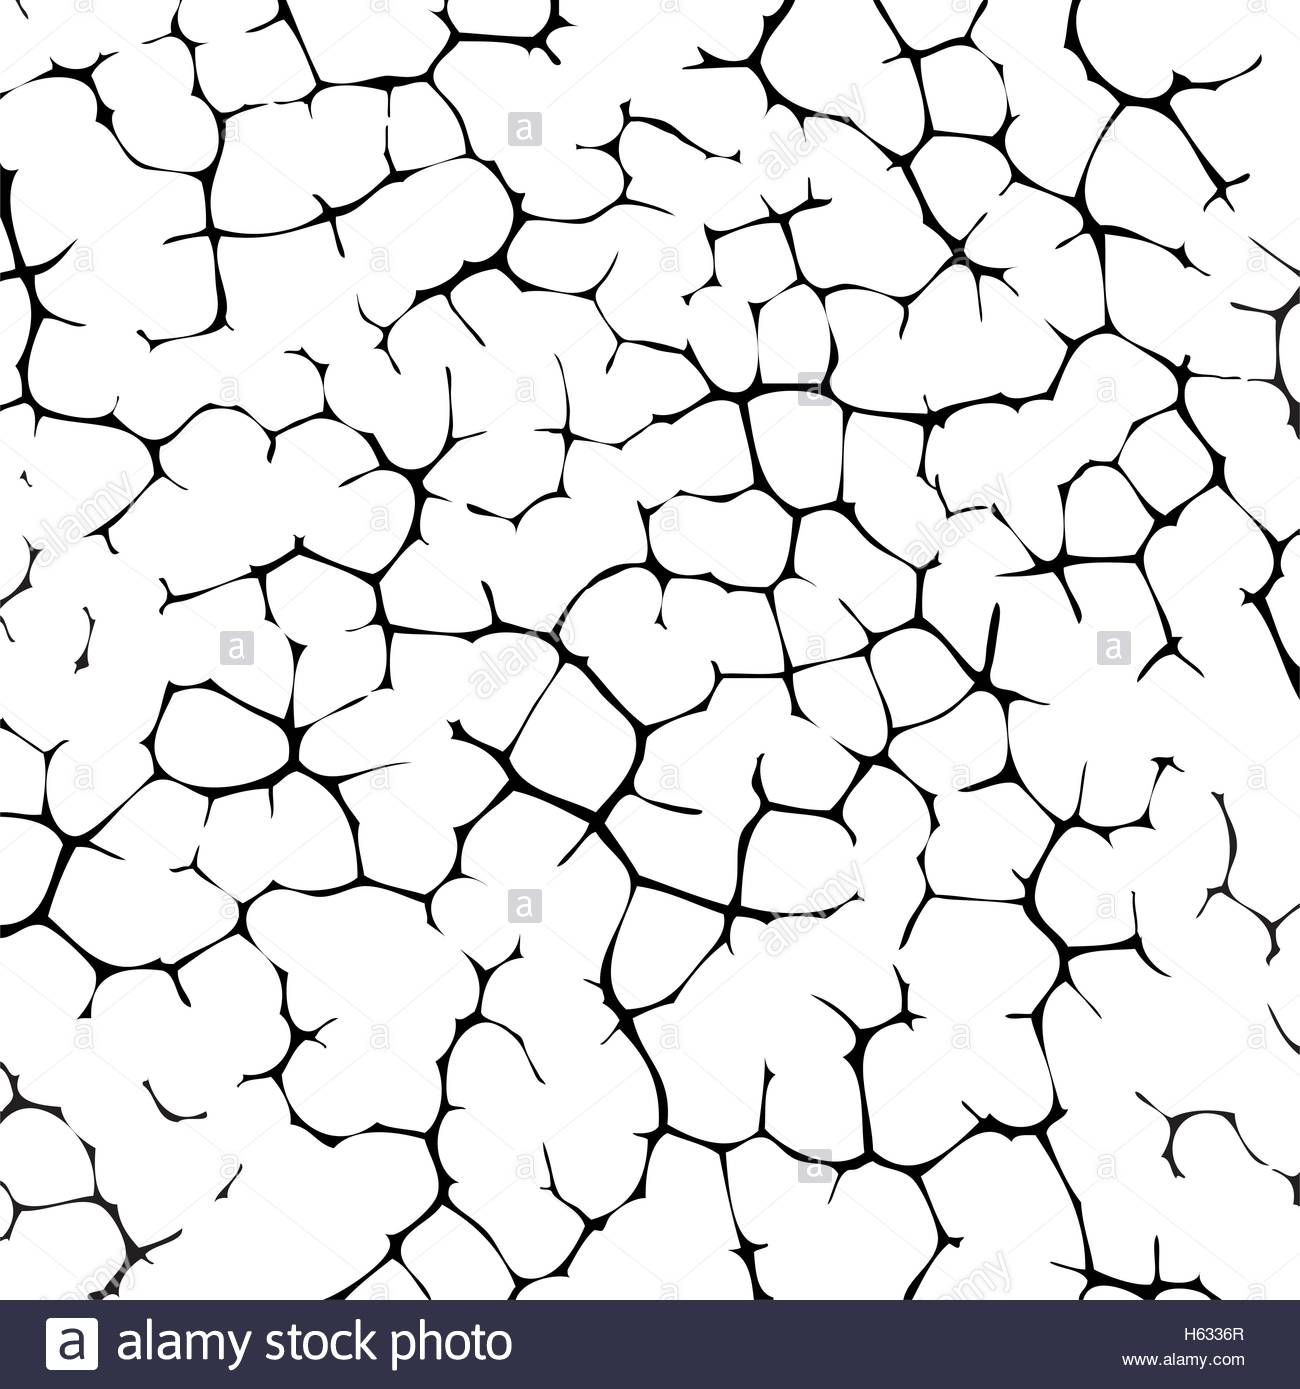 1300x1389 Vector Black And White Cracked Texture Of Wall Or Earth Stock